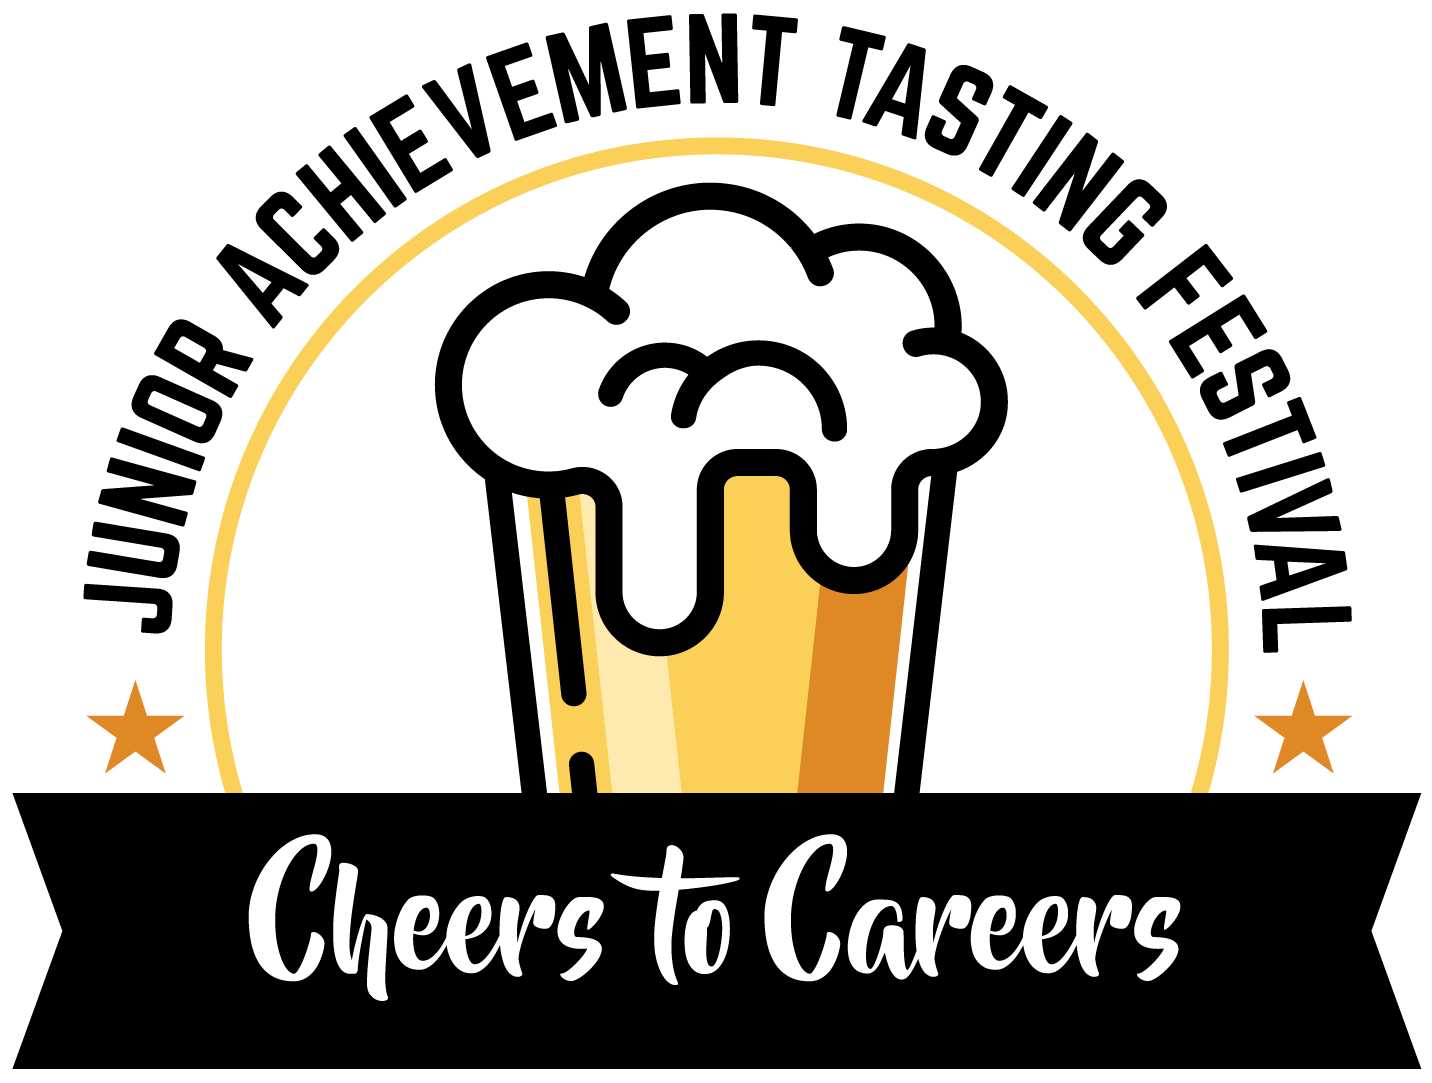 JA Cheers to Careers Tasting Festival